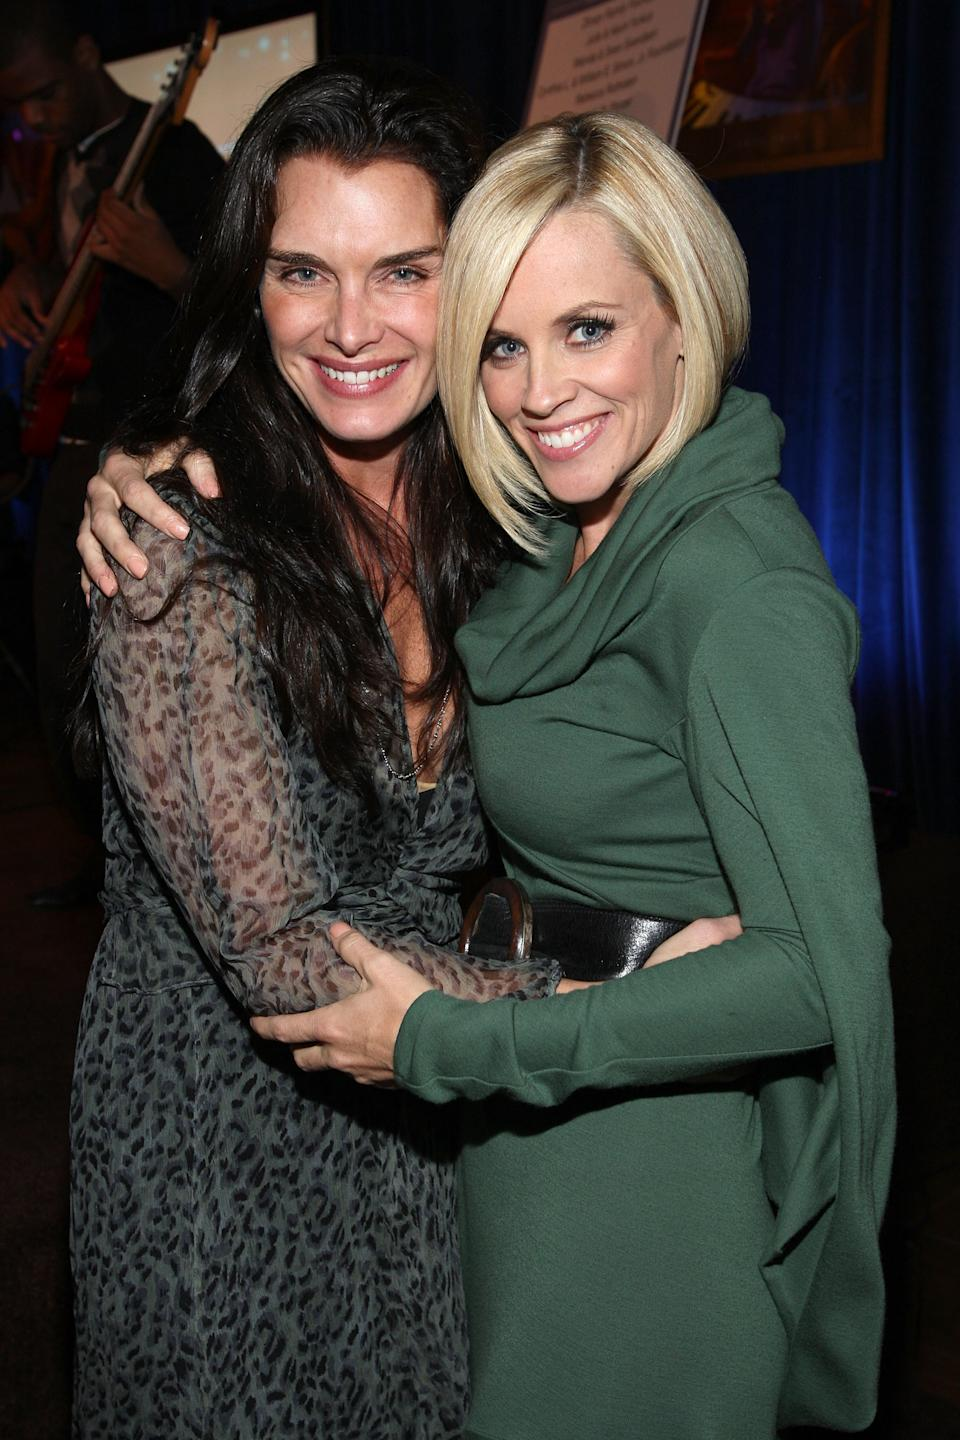 PACIFIC PALISADES, CA - OCTOBER 11:  Brooke Shields and Jenny McCarthy attend a cocktail party for the UCLA Early Childhood Partial Hospitalization Program hosted by Jenny McCarthy on October 11, 2007 in Pacific Palisades, California.  (Photo by John Shearer/WireImage)